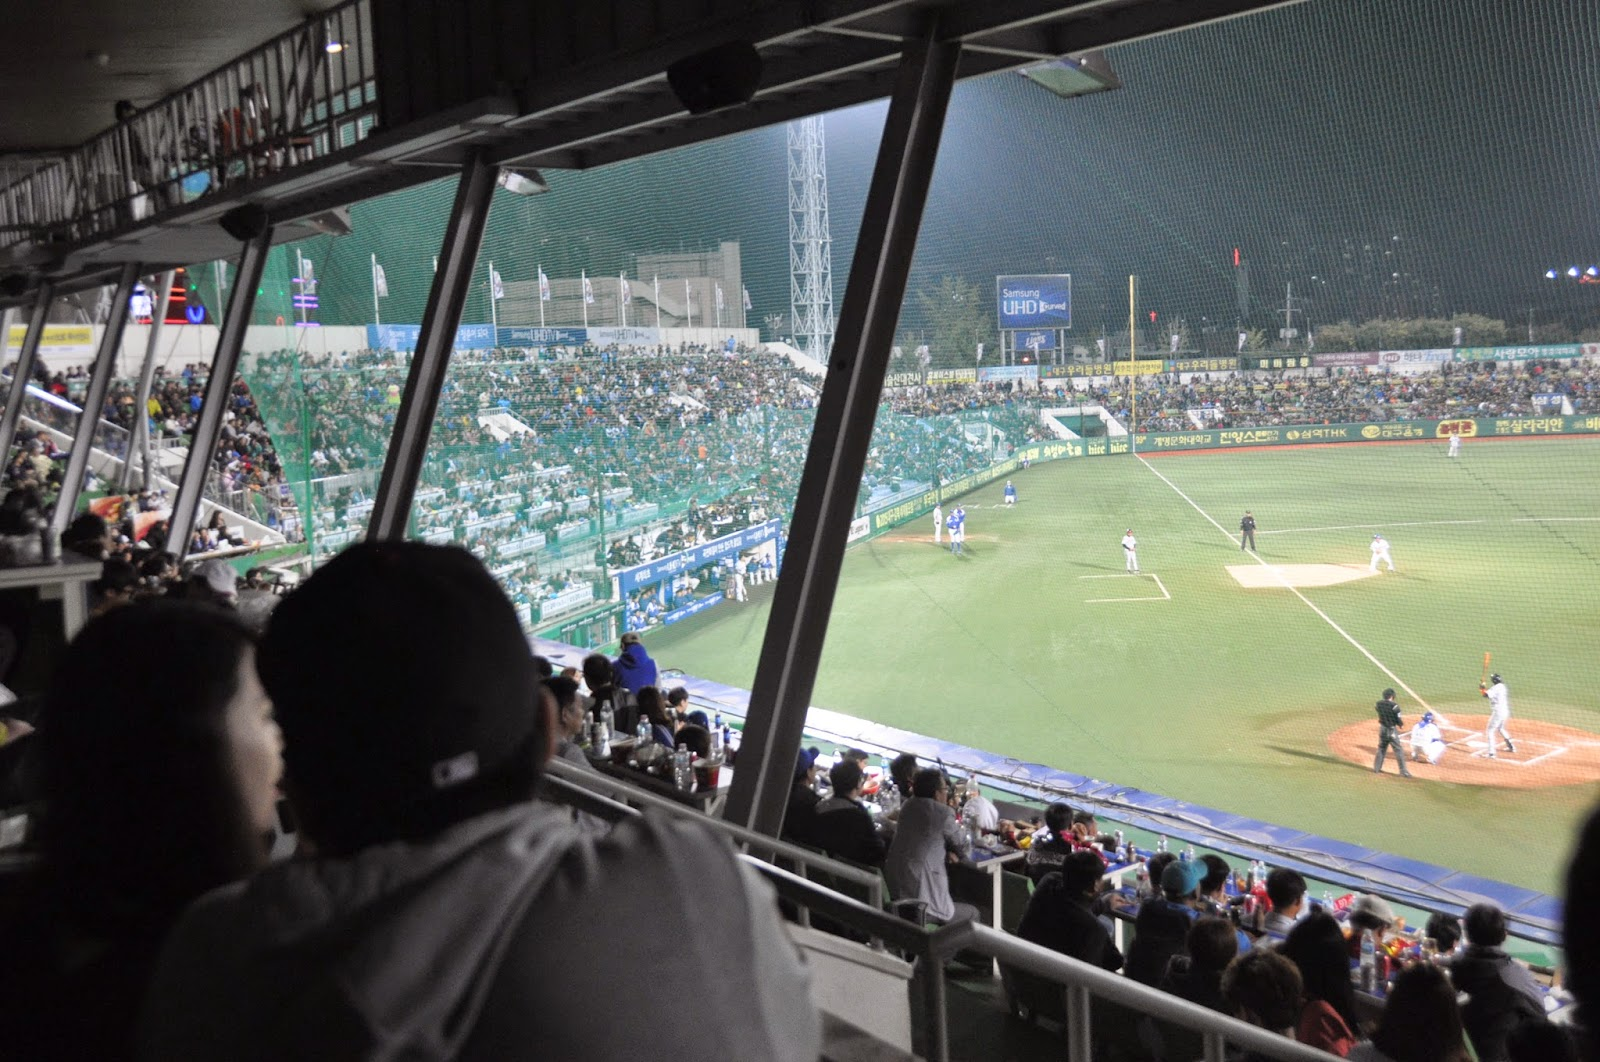 Korean Baseball Game